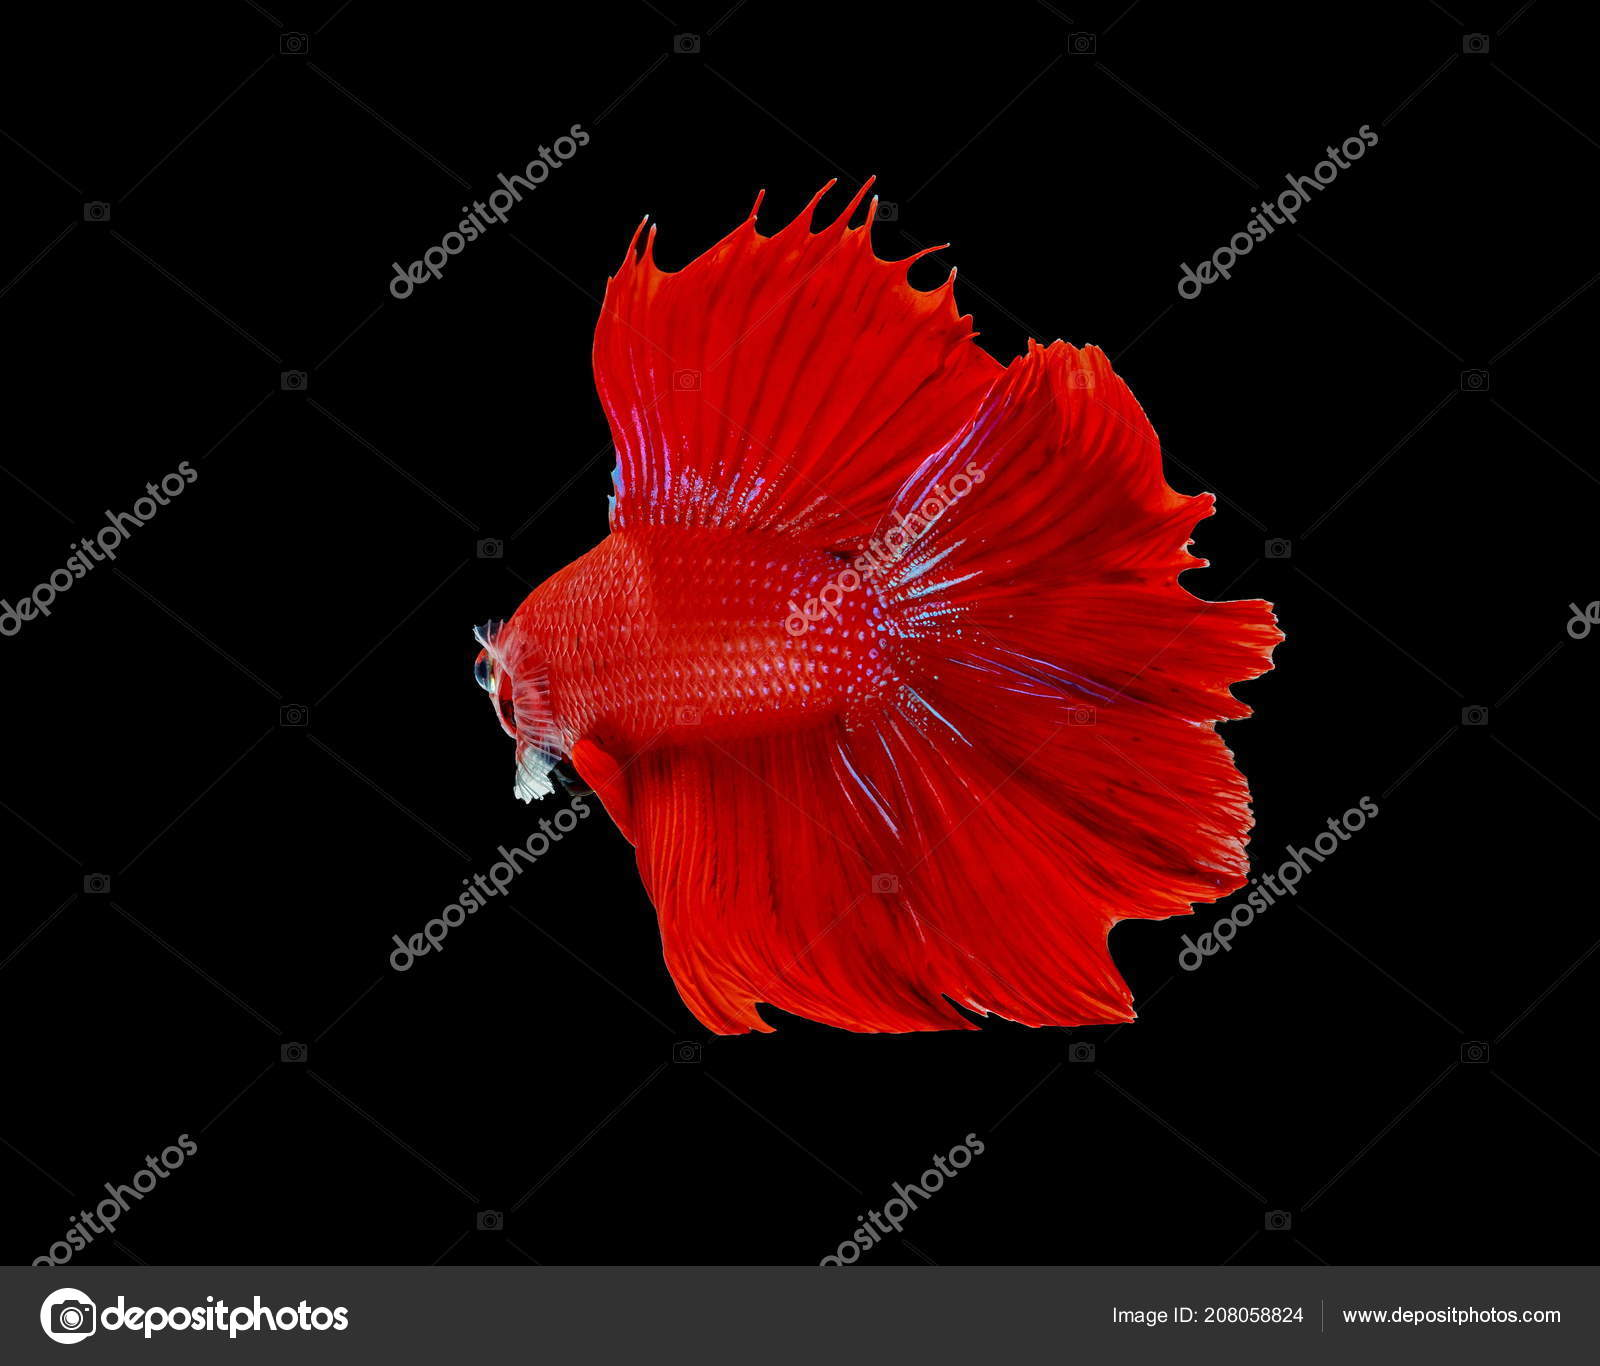 Fighting Fish Red Fish Black Background Color Siamese Fighting Fish ...